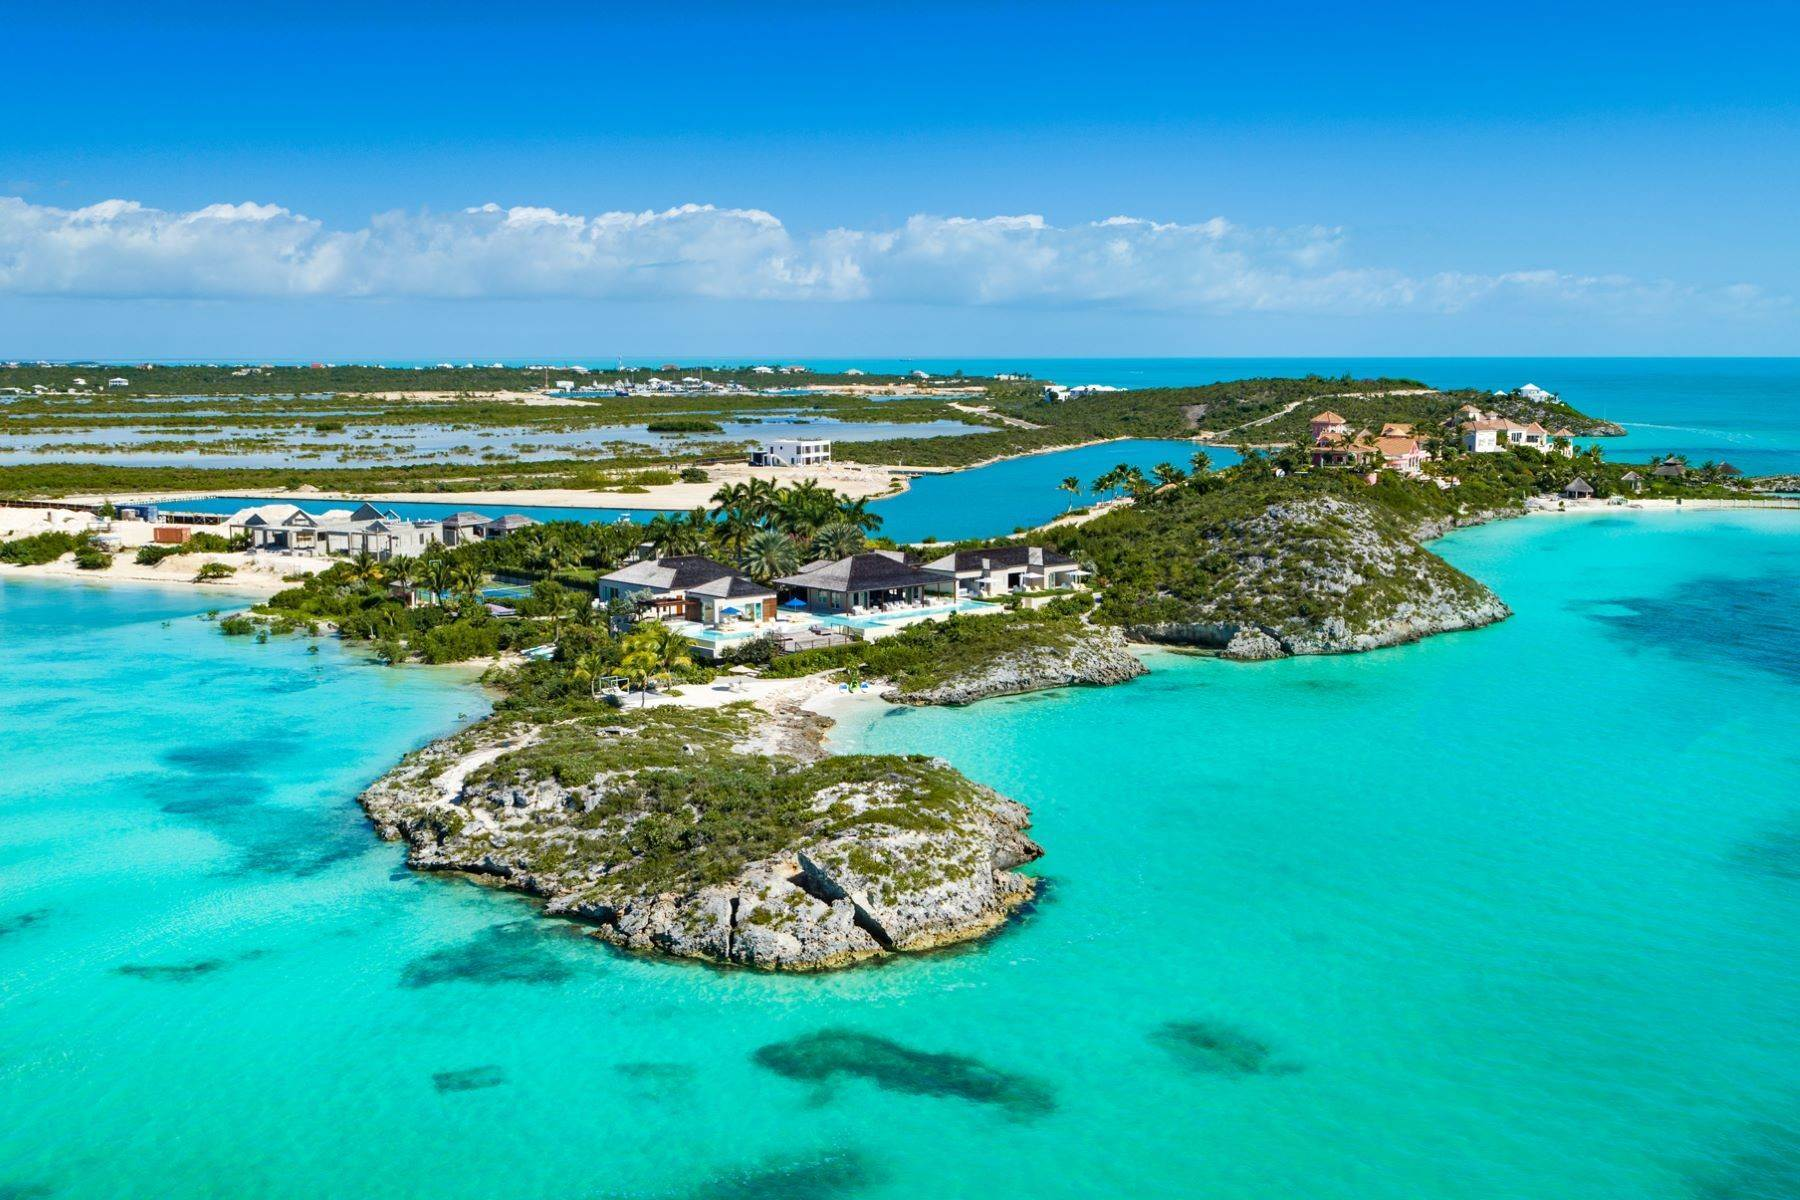 Single Family Homes for Sale at Turtle Tail Estate Beachfront Turtle Tail, Providenciales TCI Turks And Caicos Islands